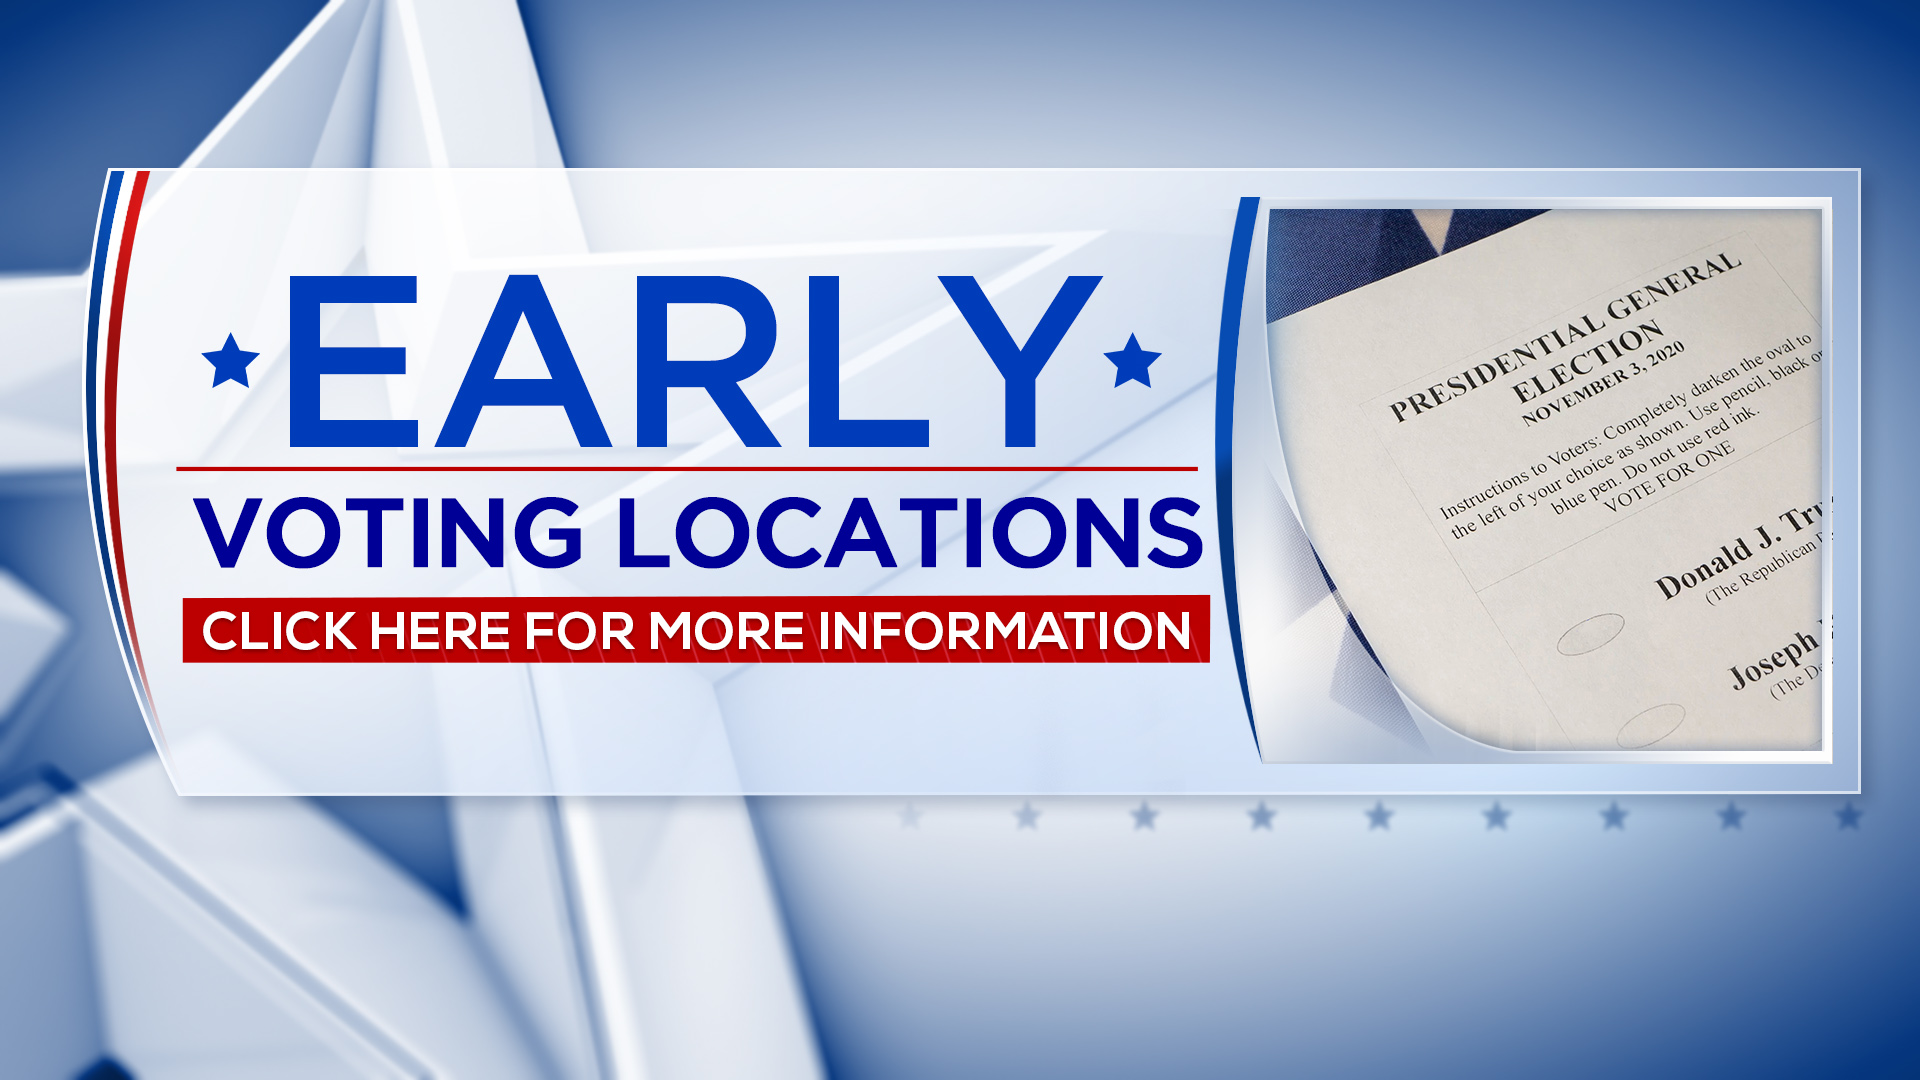 Early Voting Locations